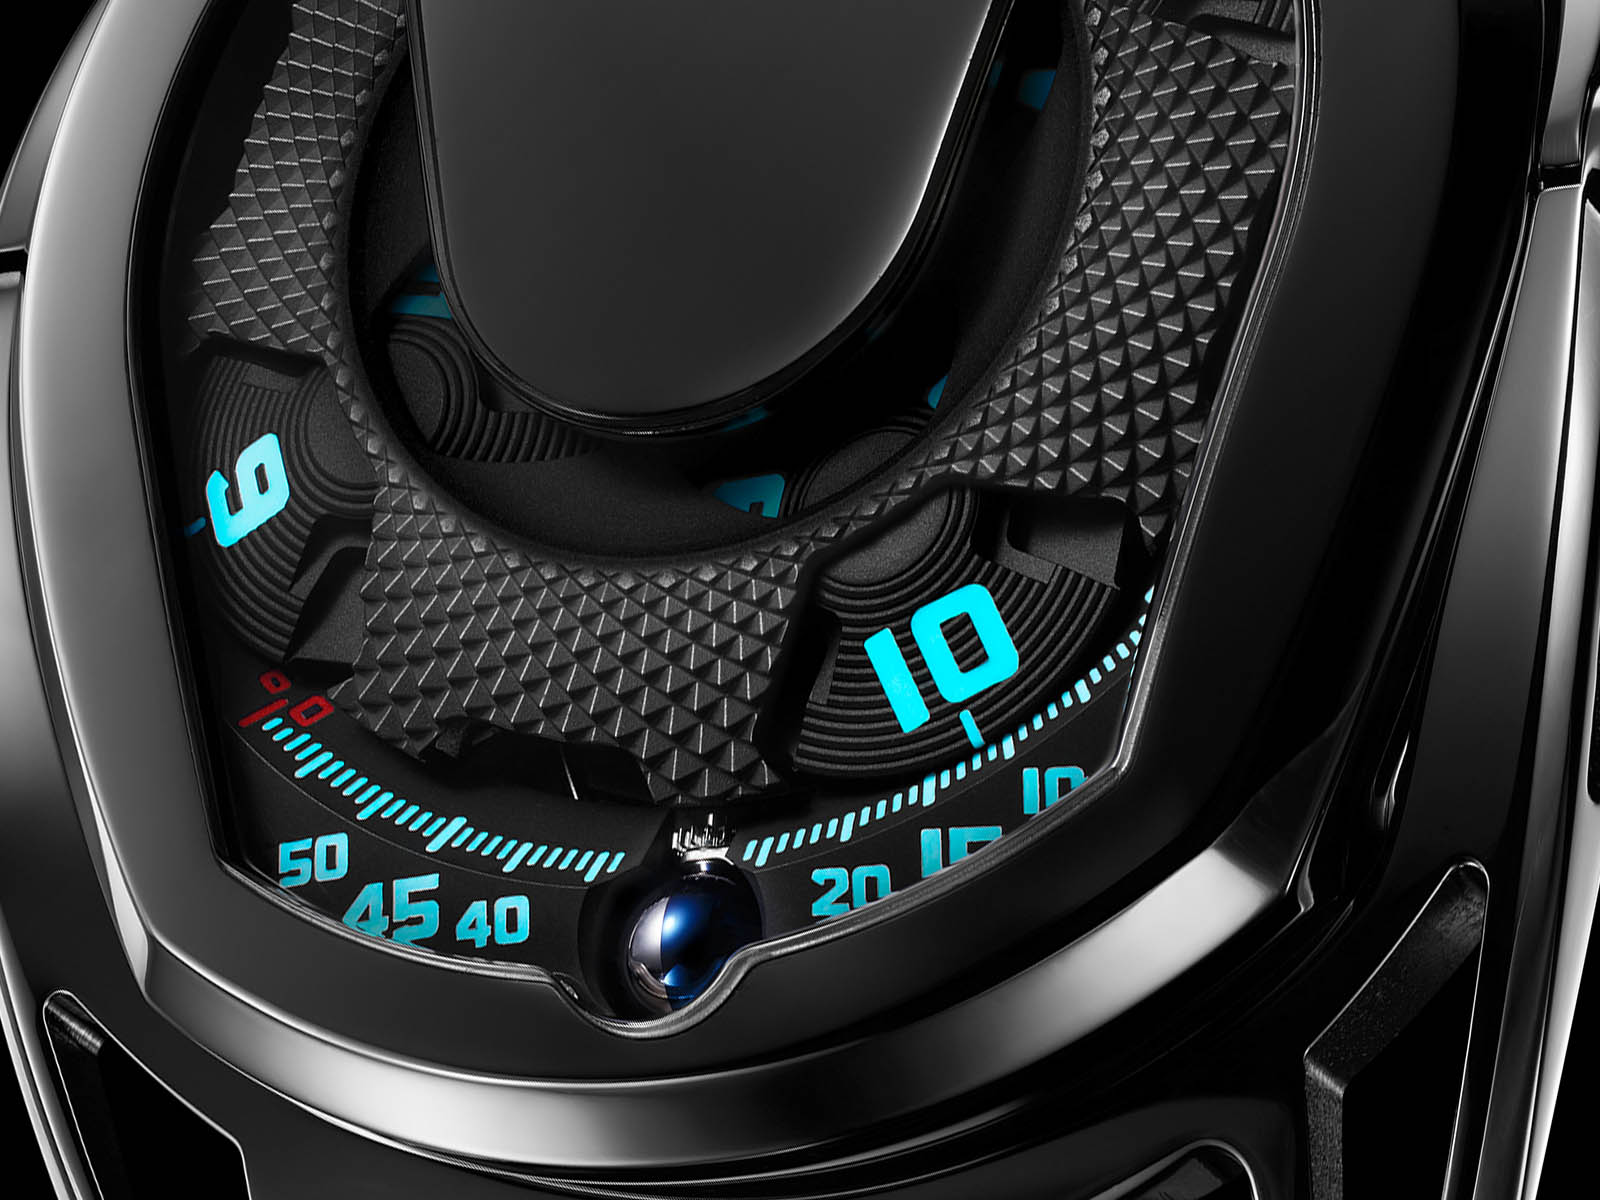 de-bethune-urwerk-only-watch-2019-4.jpg